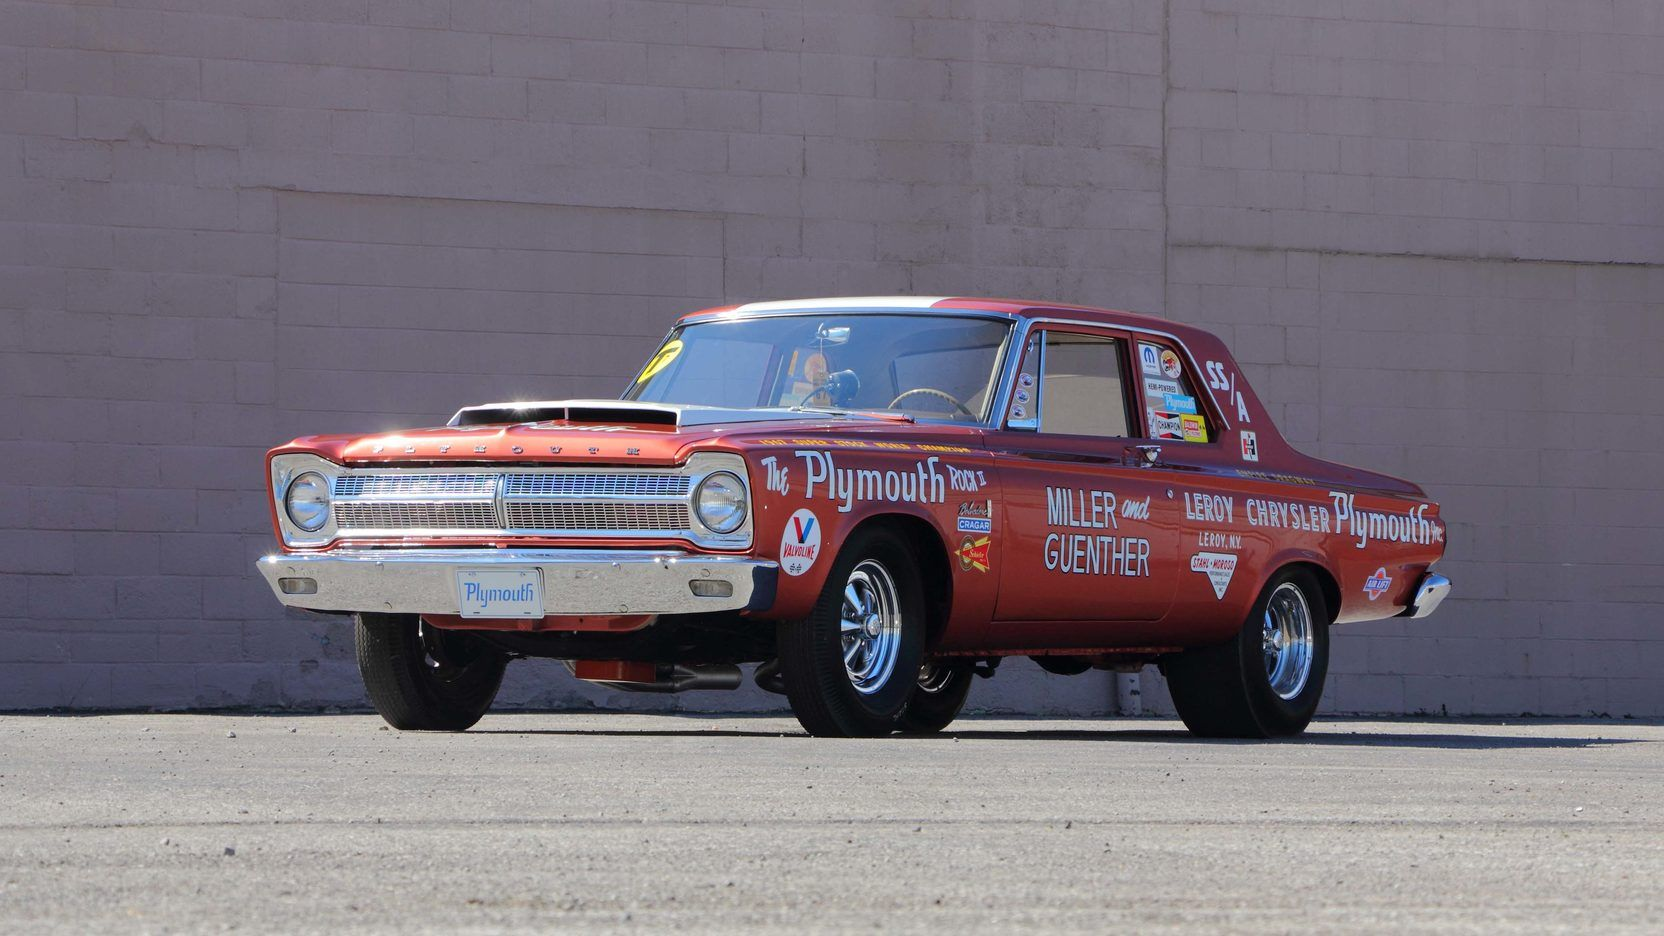 1965 Plymouth Belvedere A990 Lightweight Plymouth